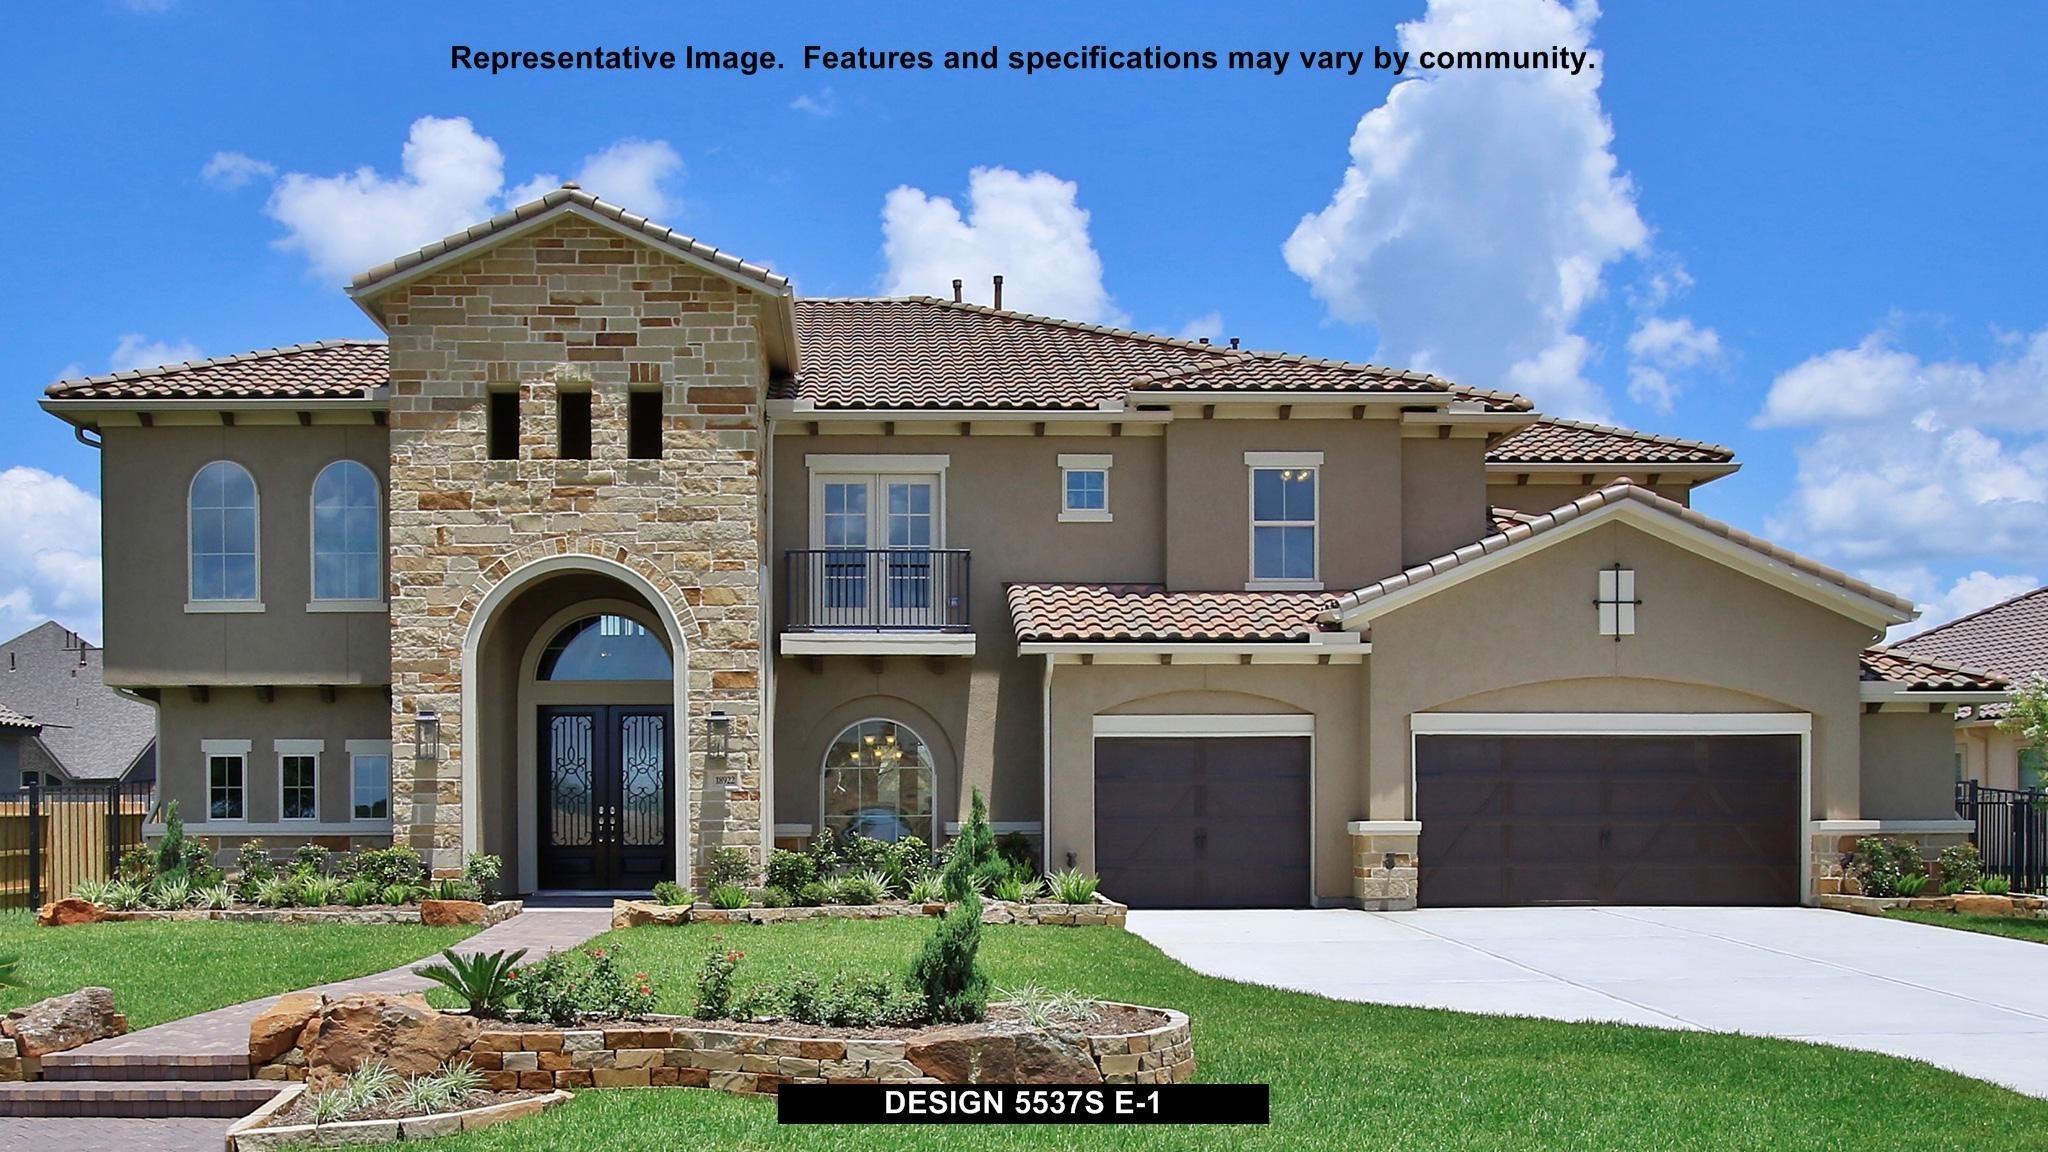 19214 WEST JOSEY OVERLOOK DRIVE, Cypress, TX Homes & Land - Real Estate